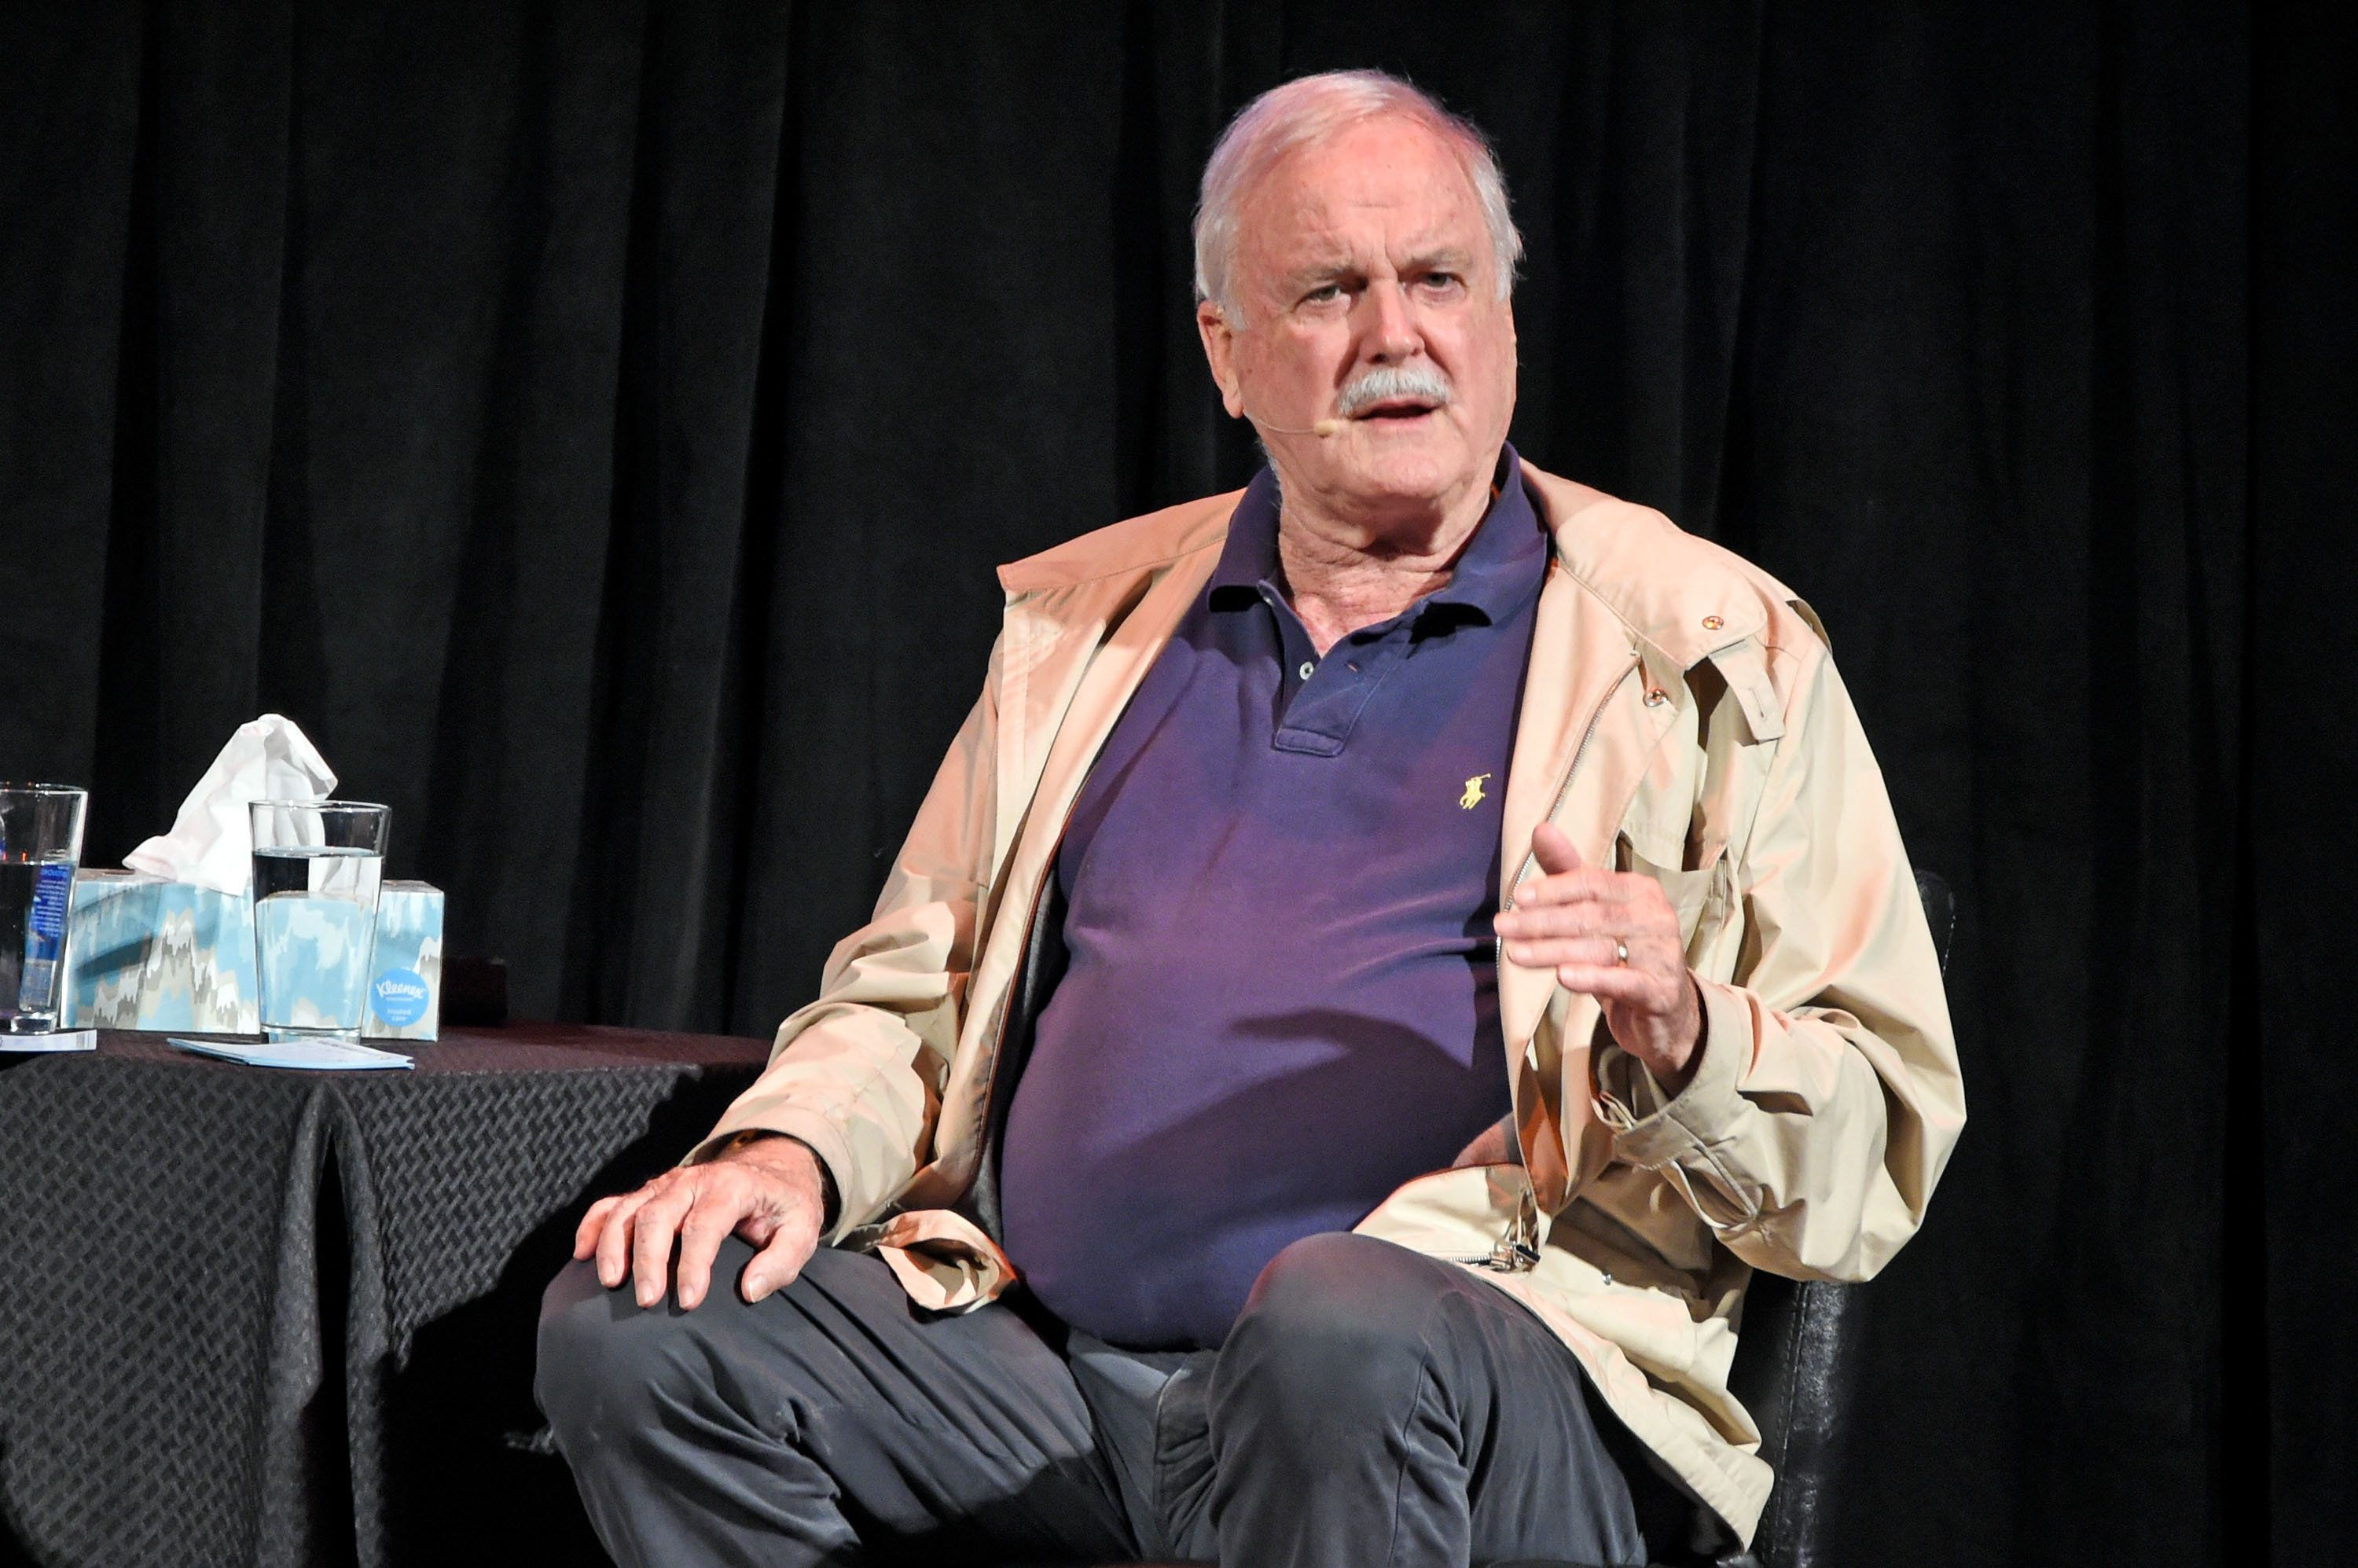 LOUISVILLE, KY - NOVEMBER 15:  John Cleese performs at The Louisville Palace on November 15, 2017 in Louisville, Kentucky.  (Photo by Stephen J. Cohen/Getty Images)